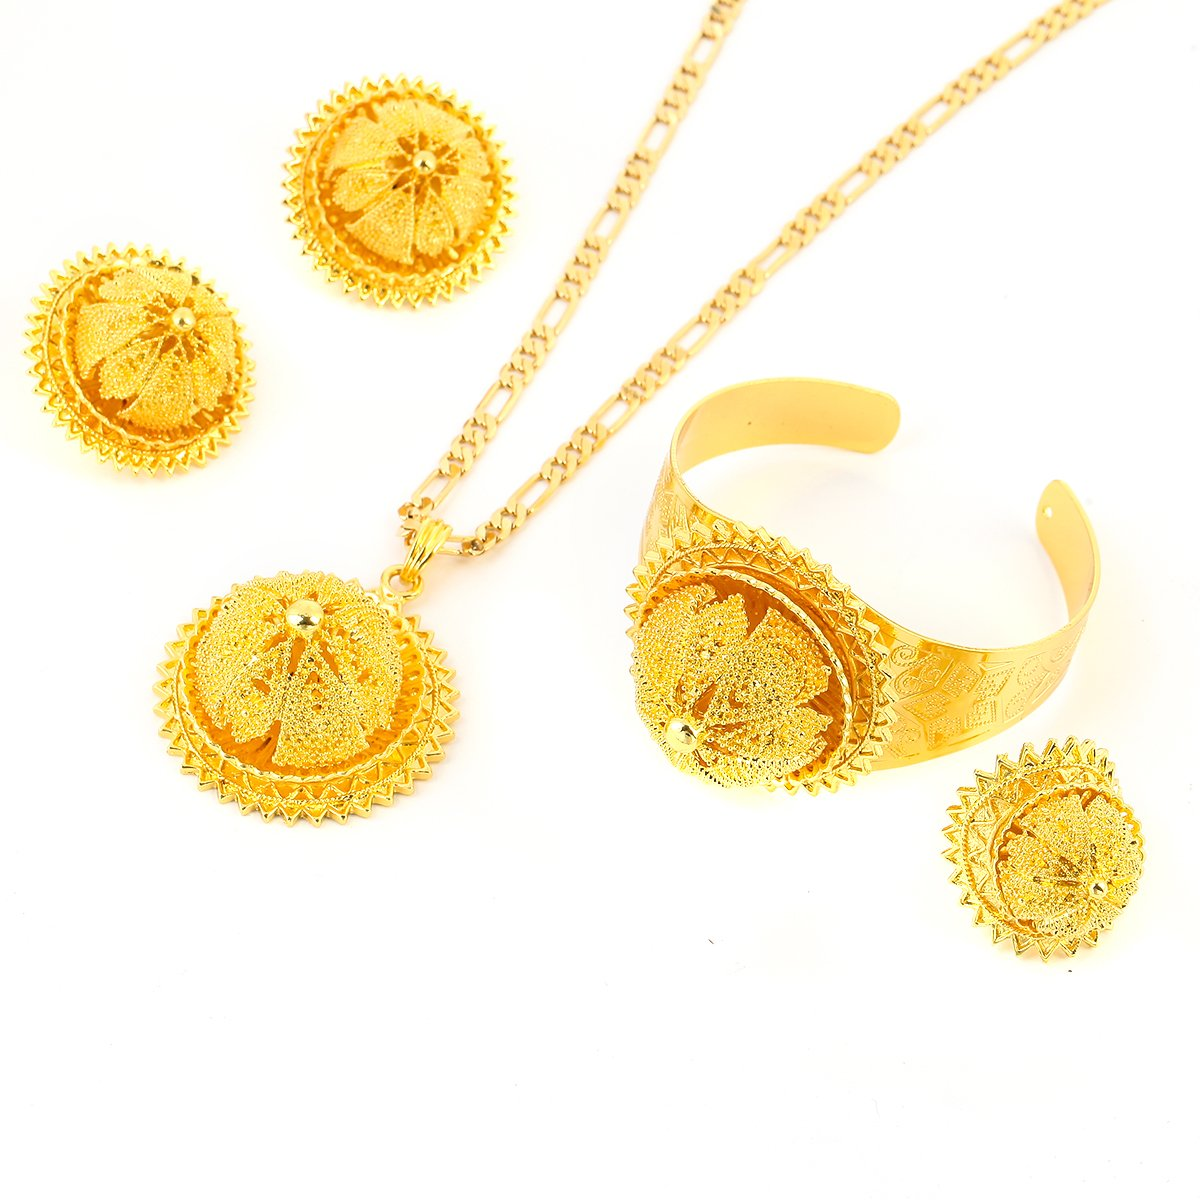 Ethiopian Bridal Jewelry Gold Plated And Silver Plated Wedding Jewellery Eritrea Nation Style Accessory (Gold Plated)